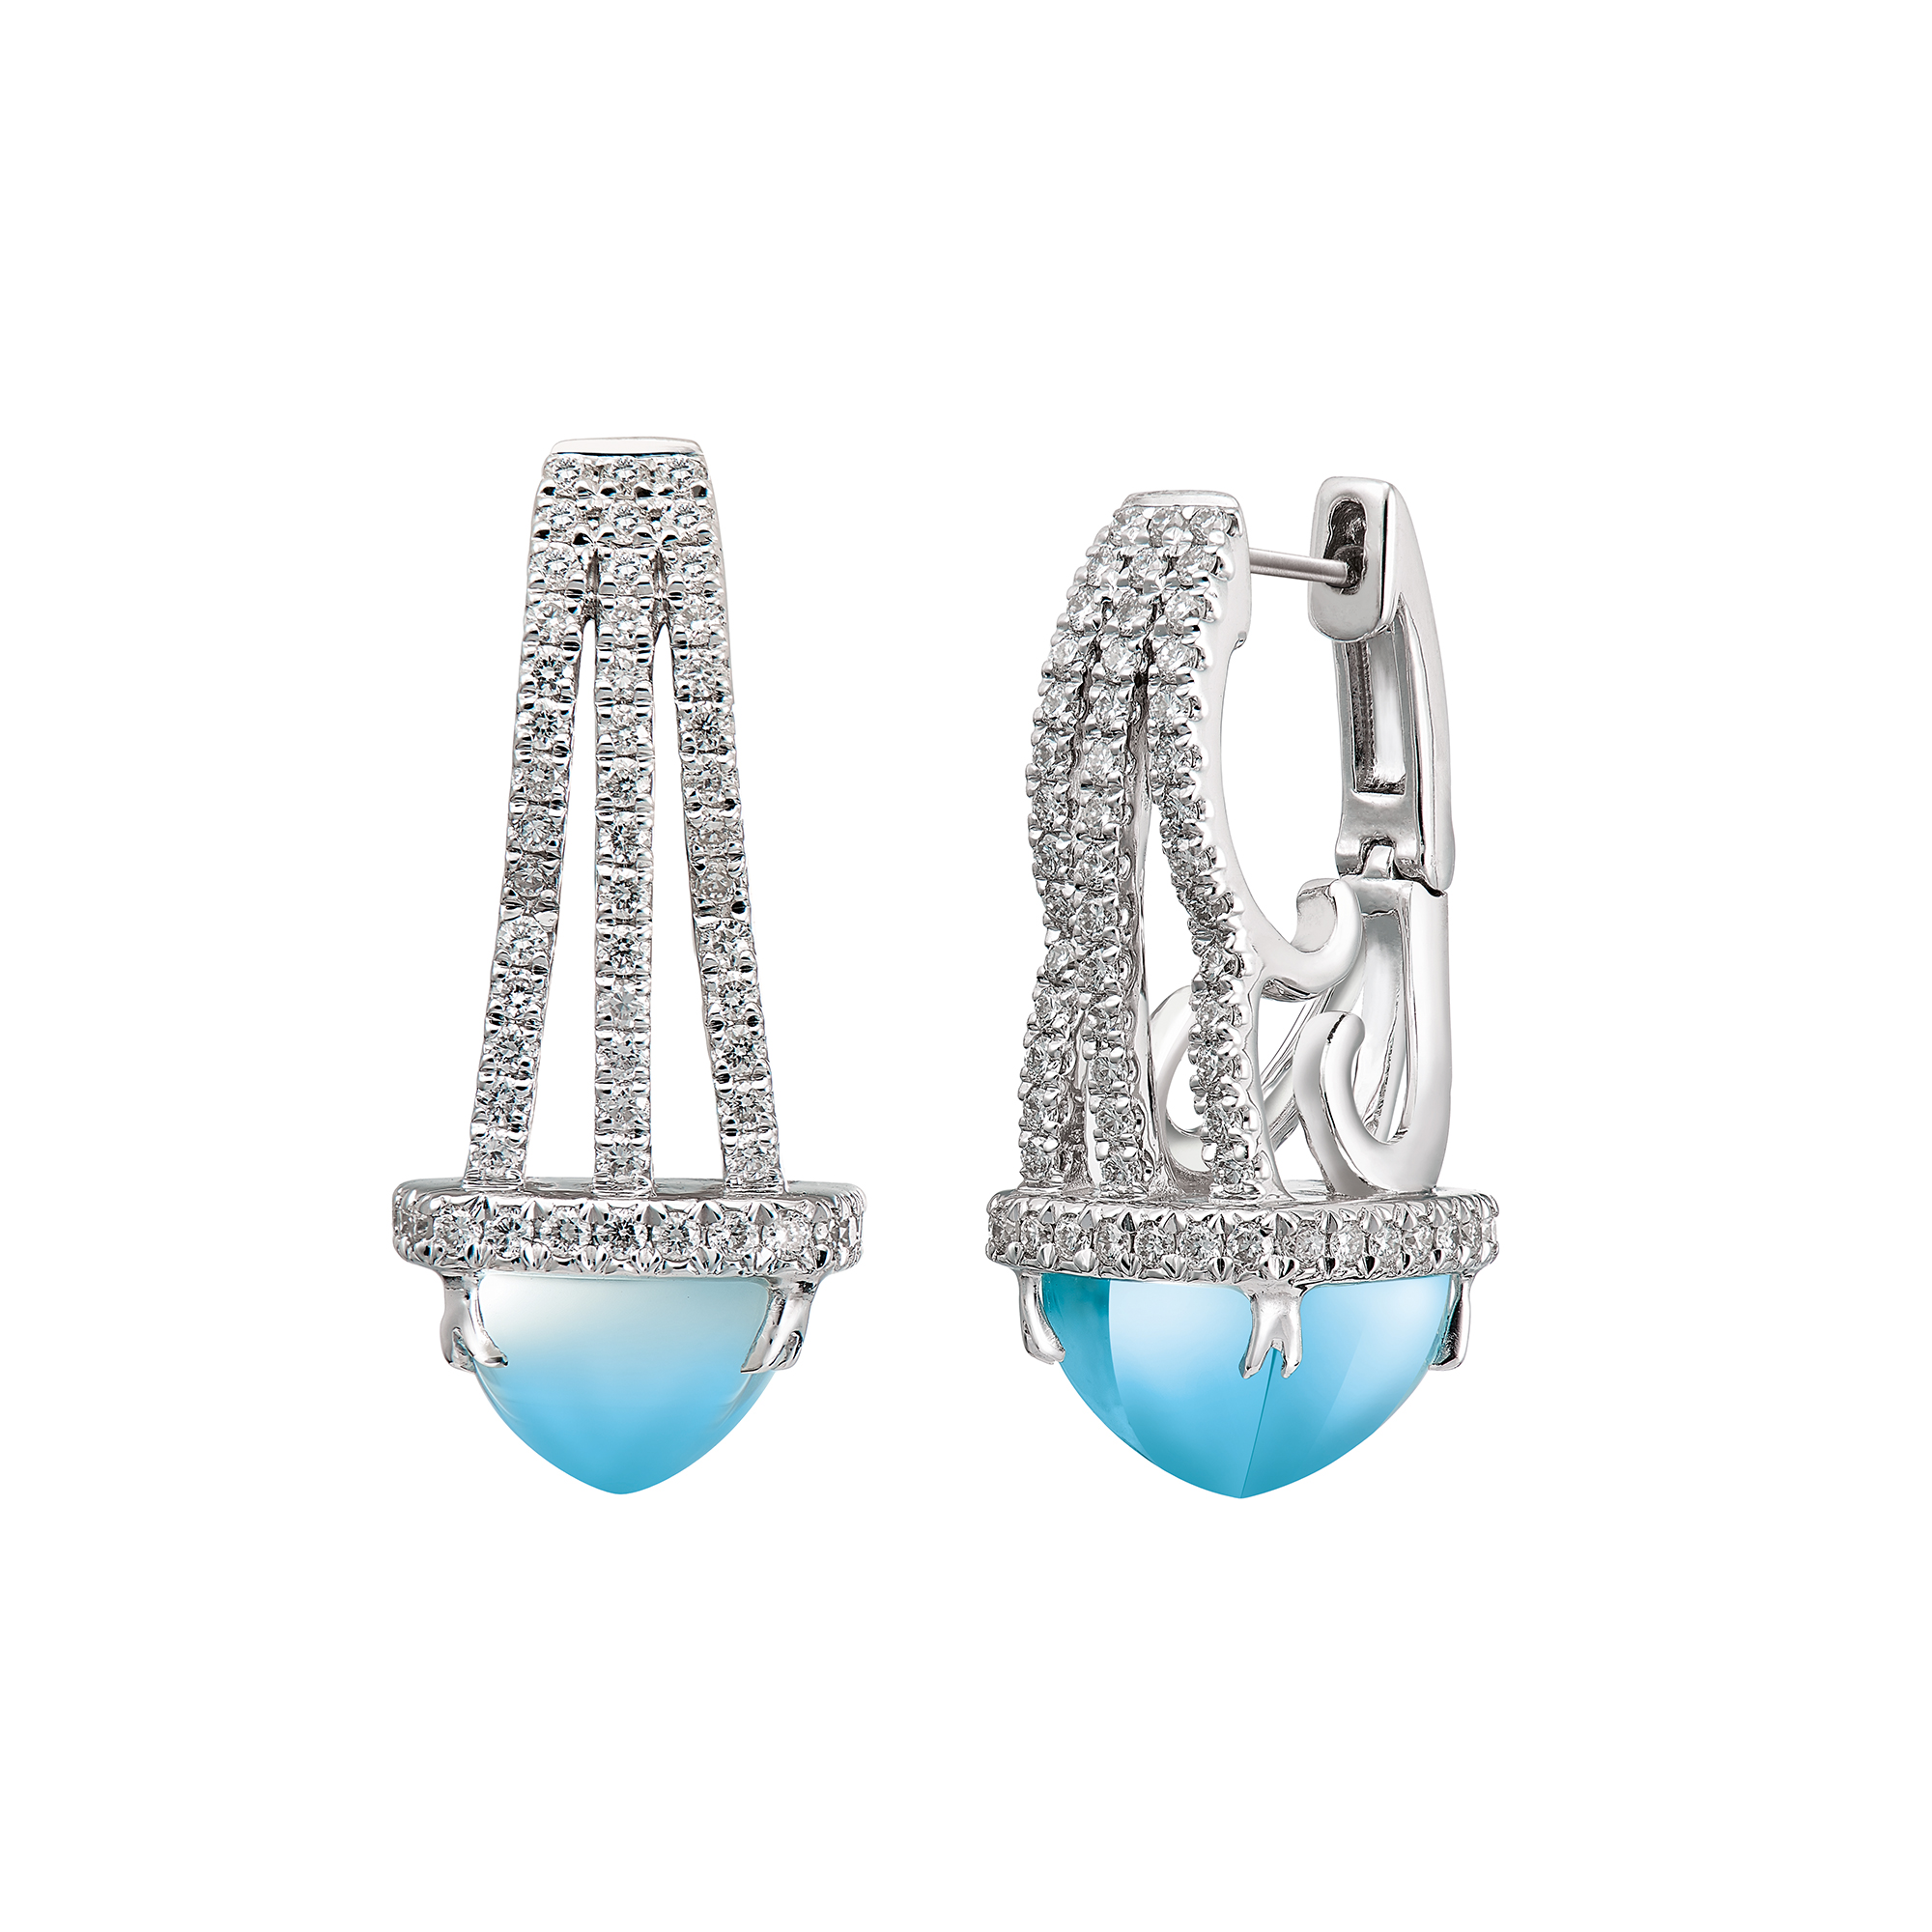 La Bouteille Earrings